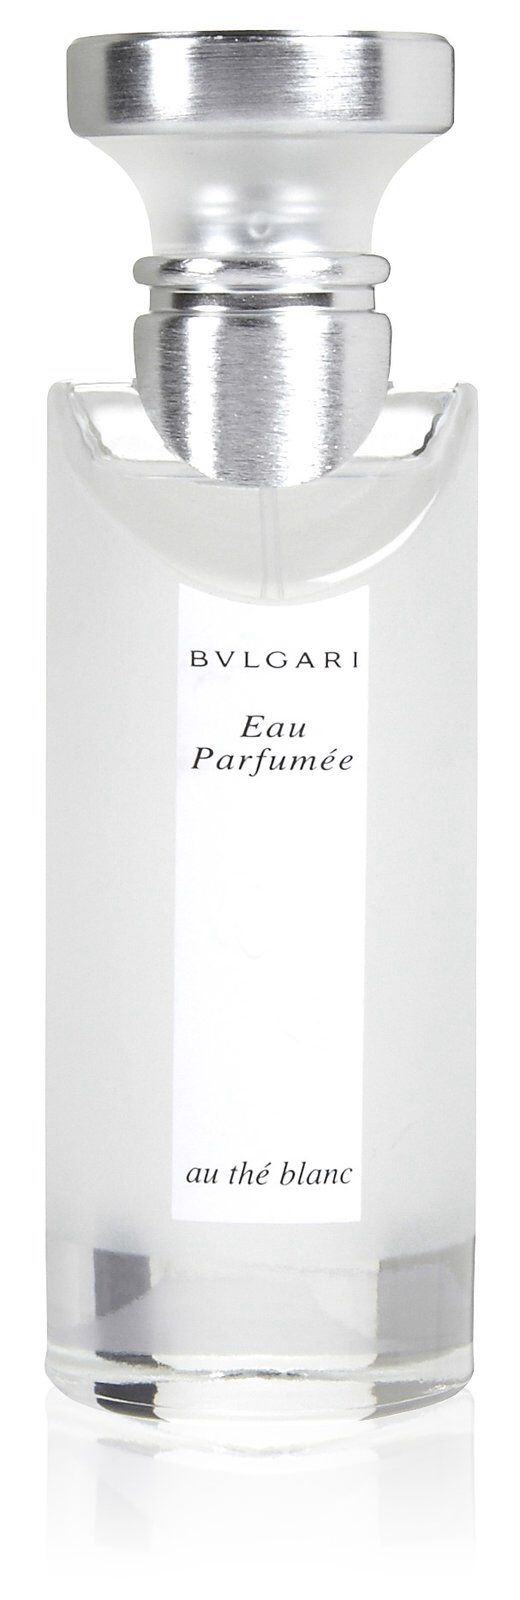 Bvlgari White tea.